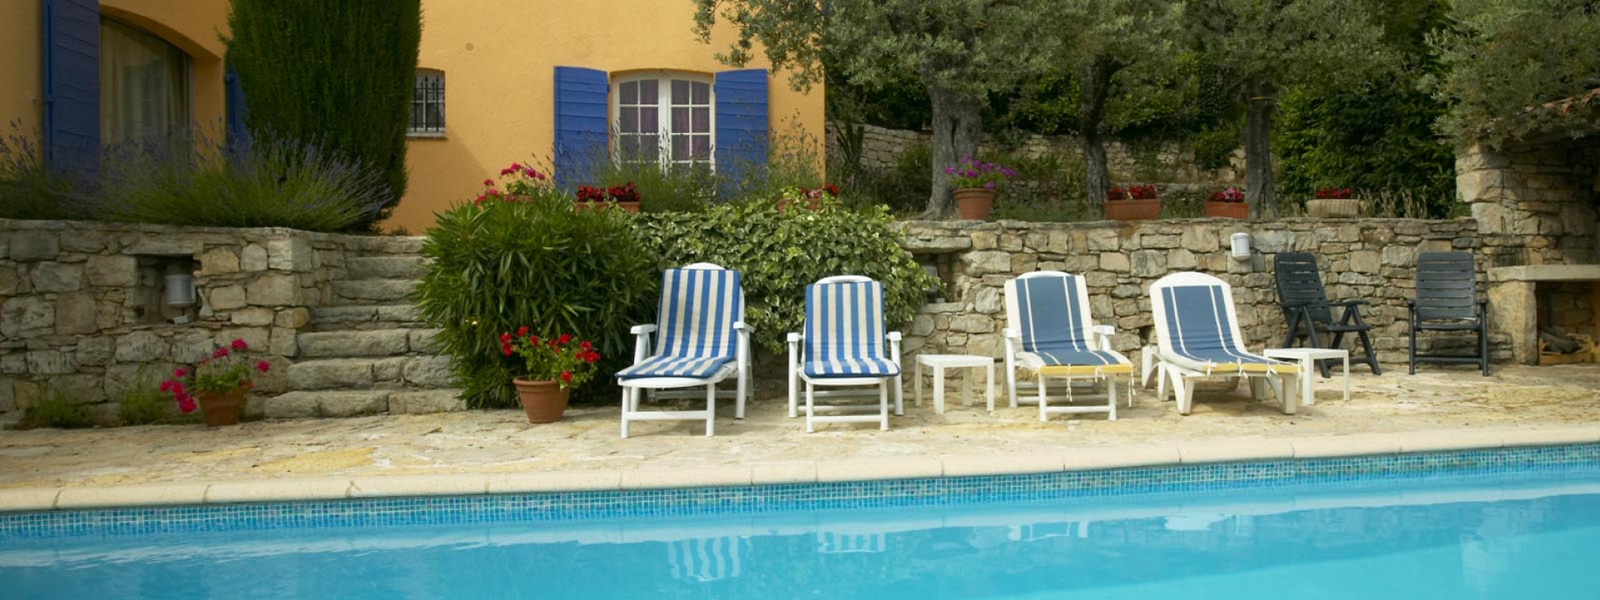 https://www.selectcottages.com/sites/default/files/revslider/image/villa-with-pool-provence.jpg